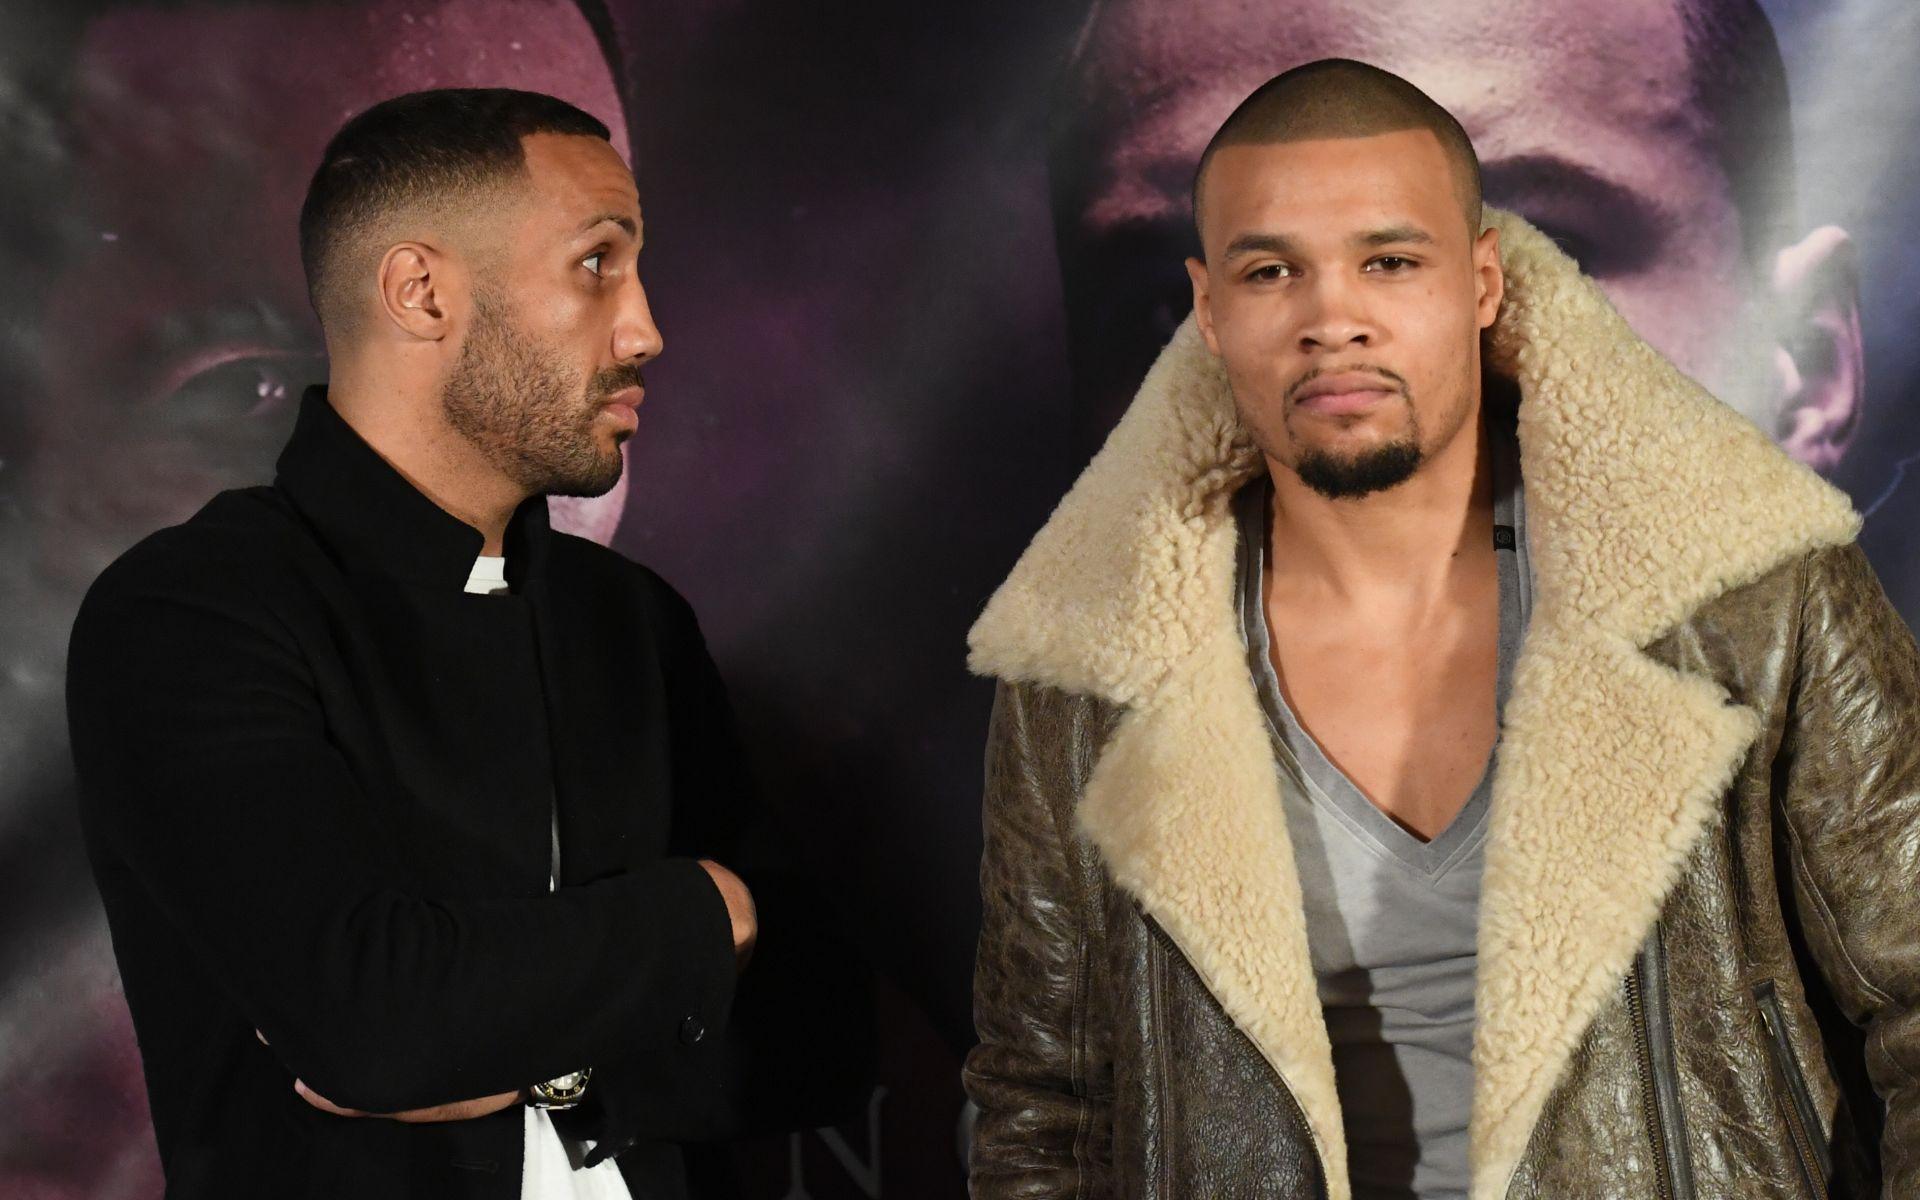 James Degale vs Chris Eubank Jr betting odds